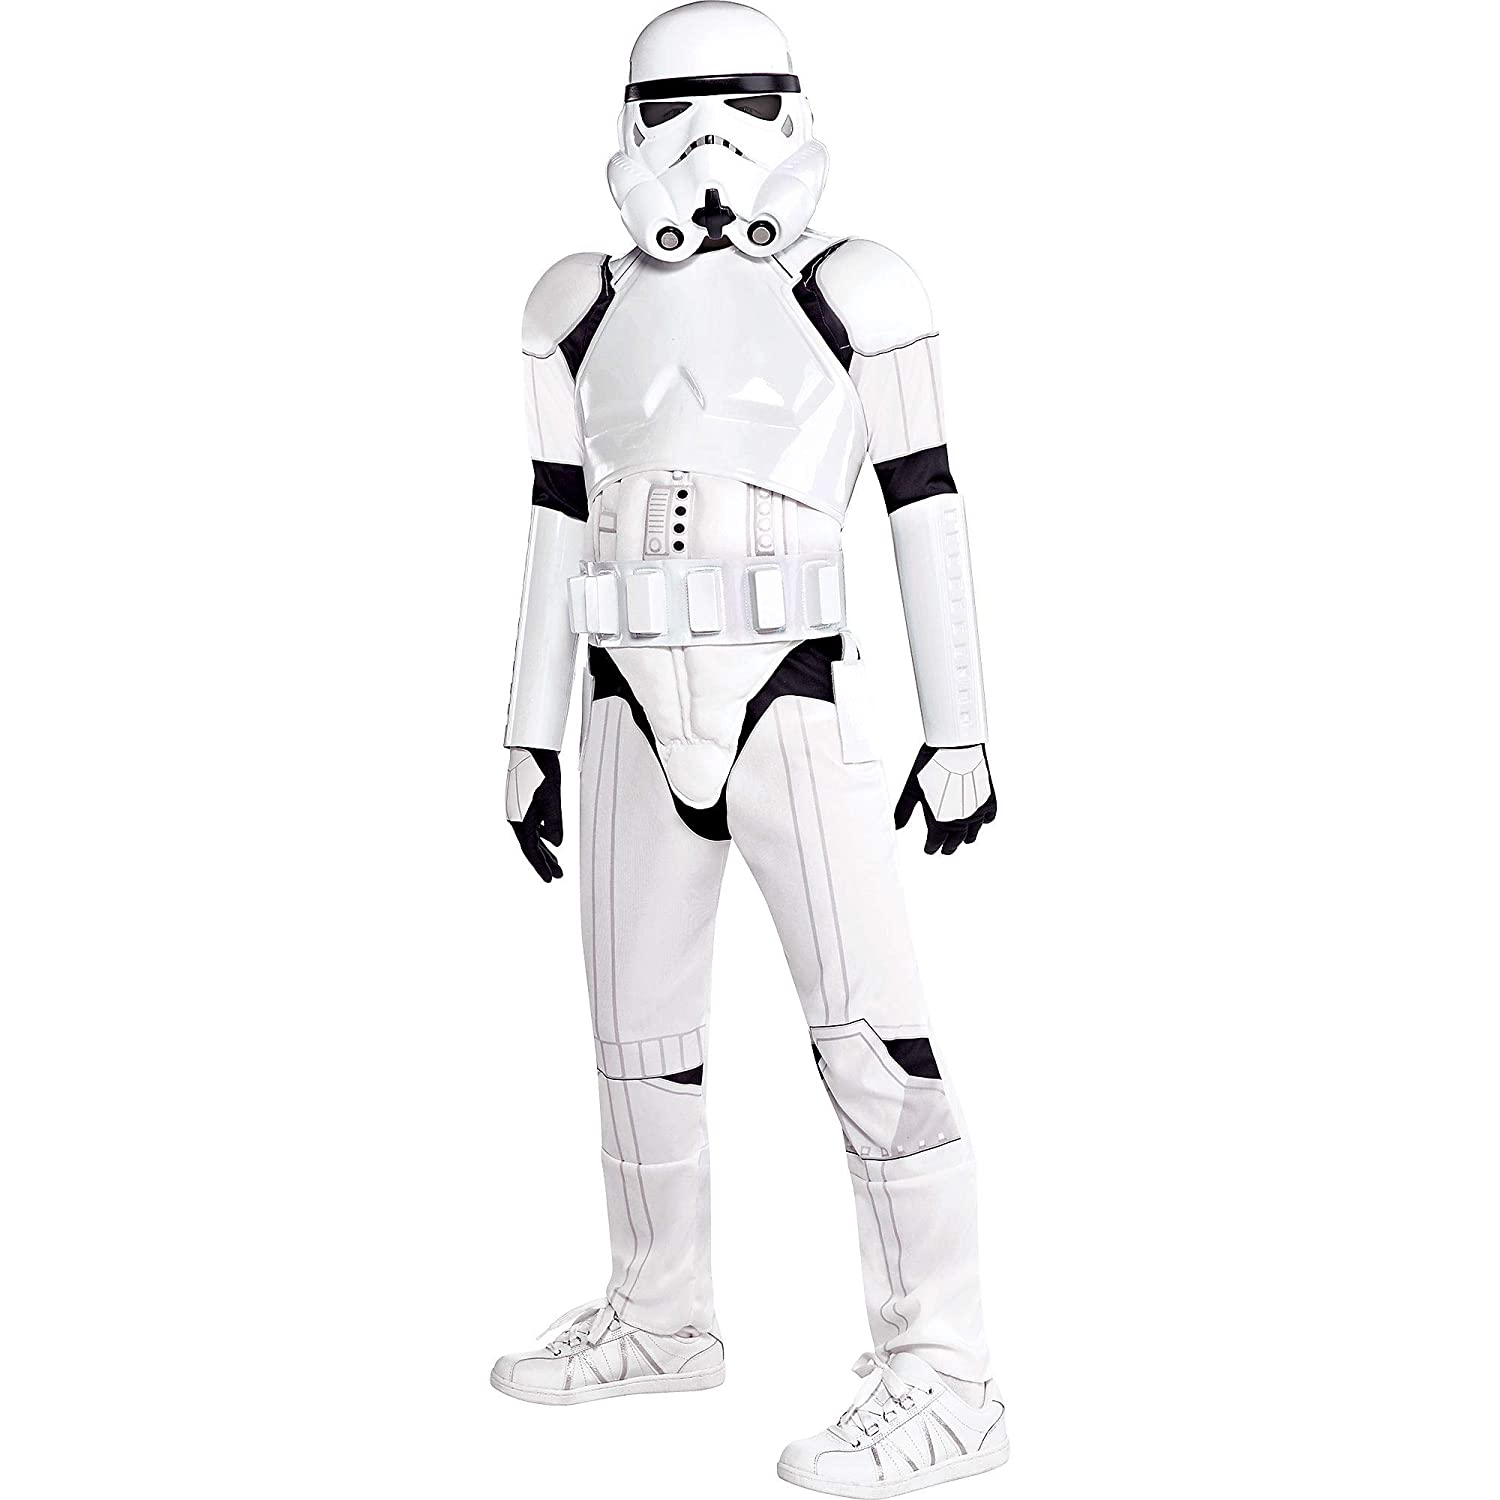 Star Wars Halloween Costumes.Amazon Com Suit Yourself Deluxe Stormtrooper Halloween Costume For